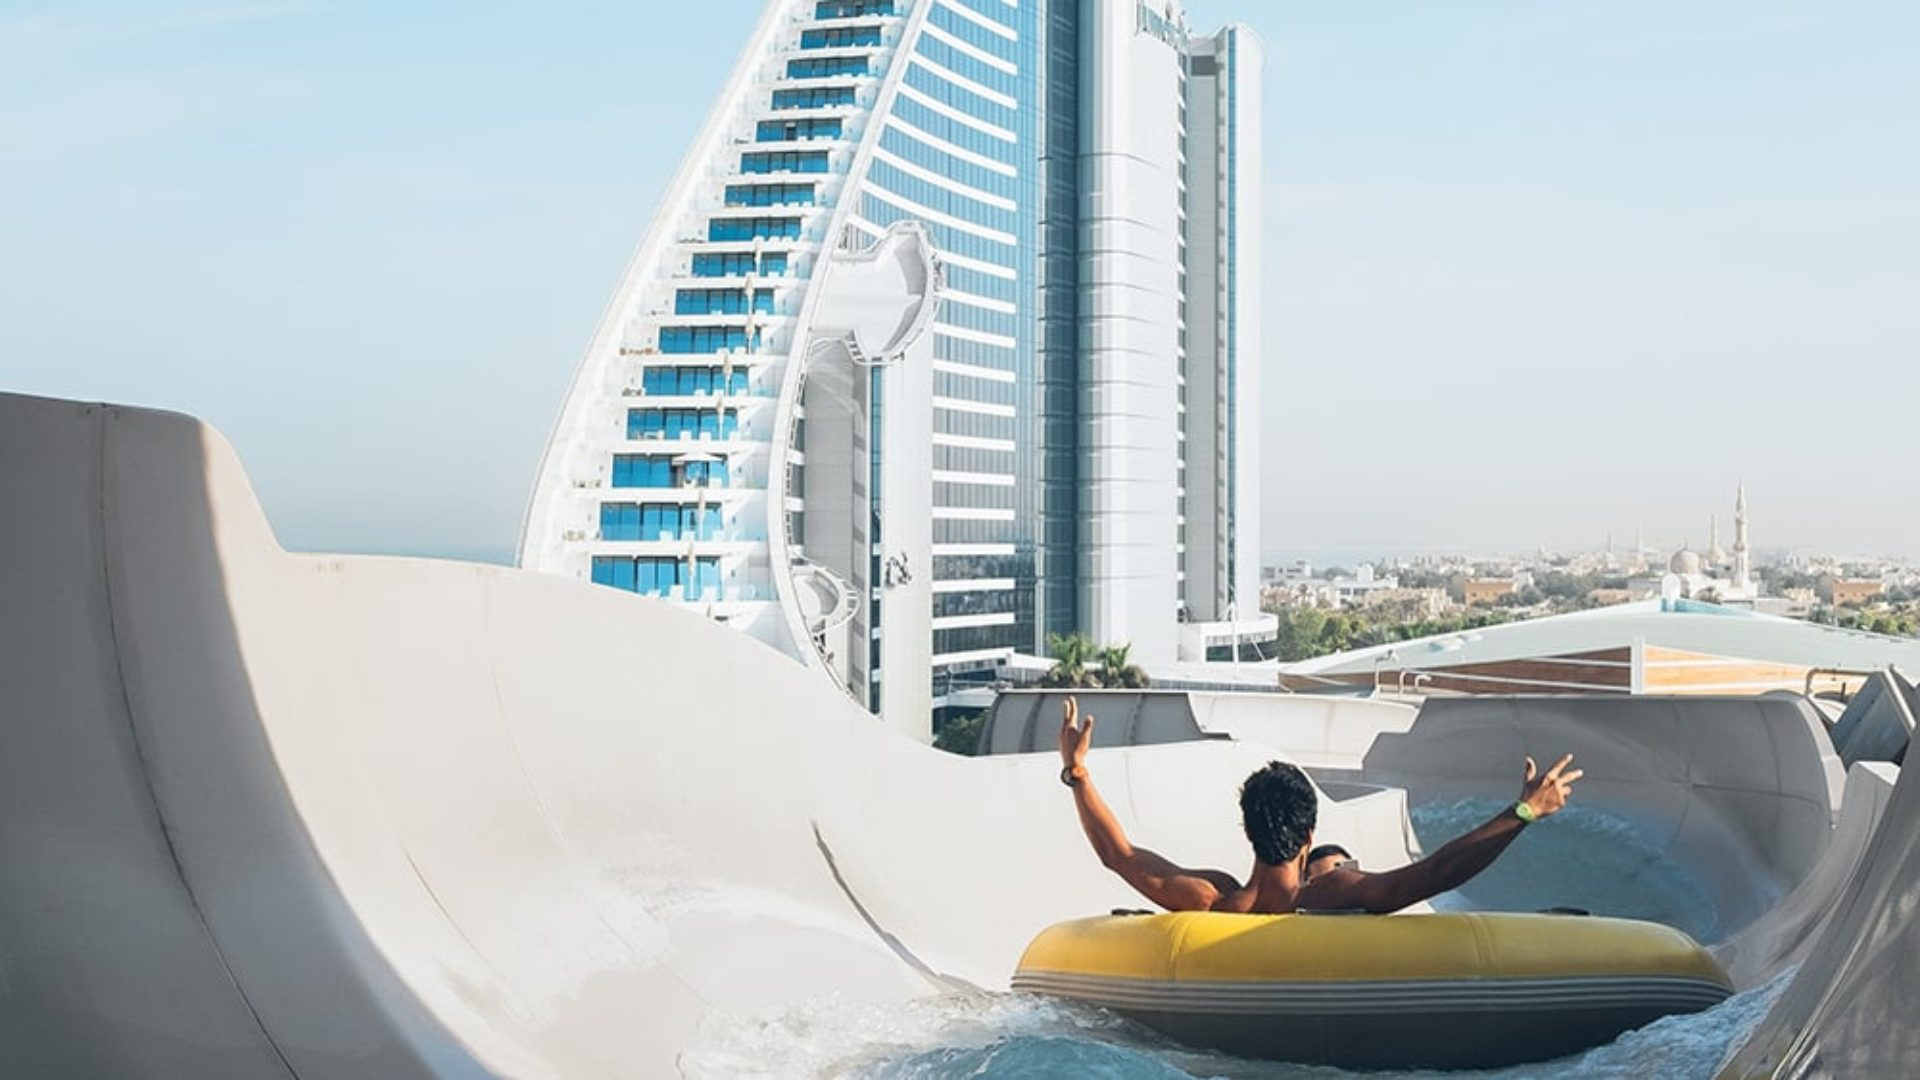 Man on a water tube at Wild Wadi Waterpark